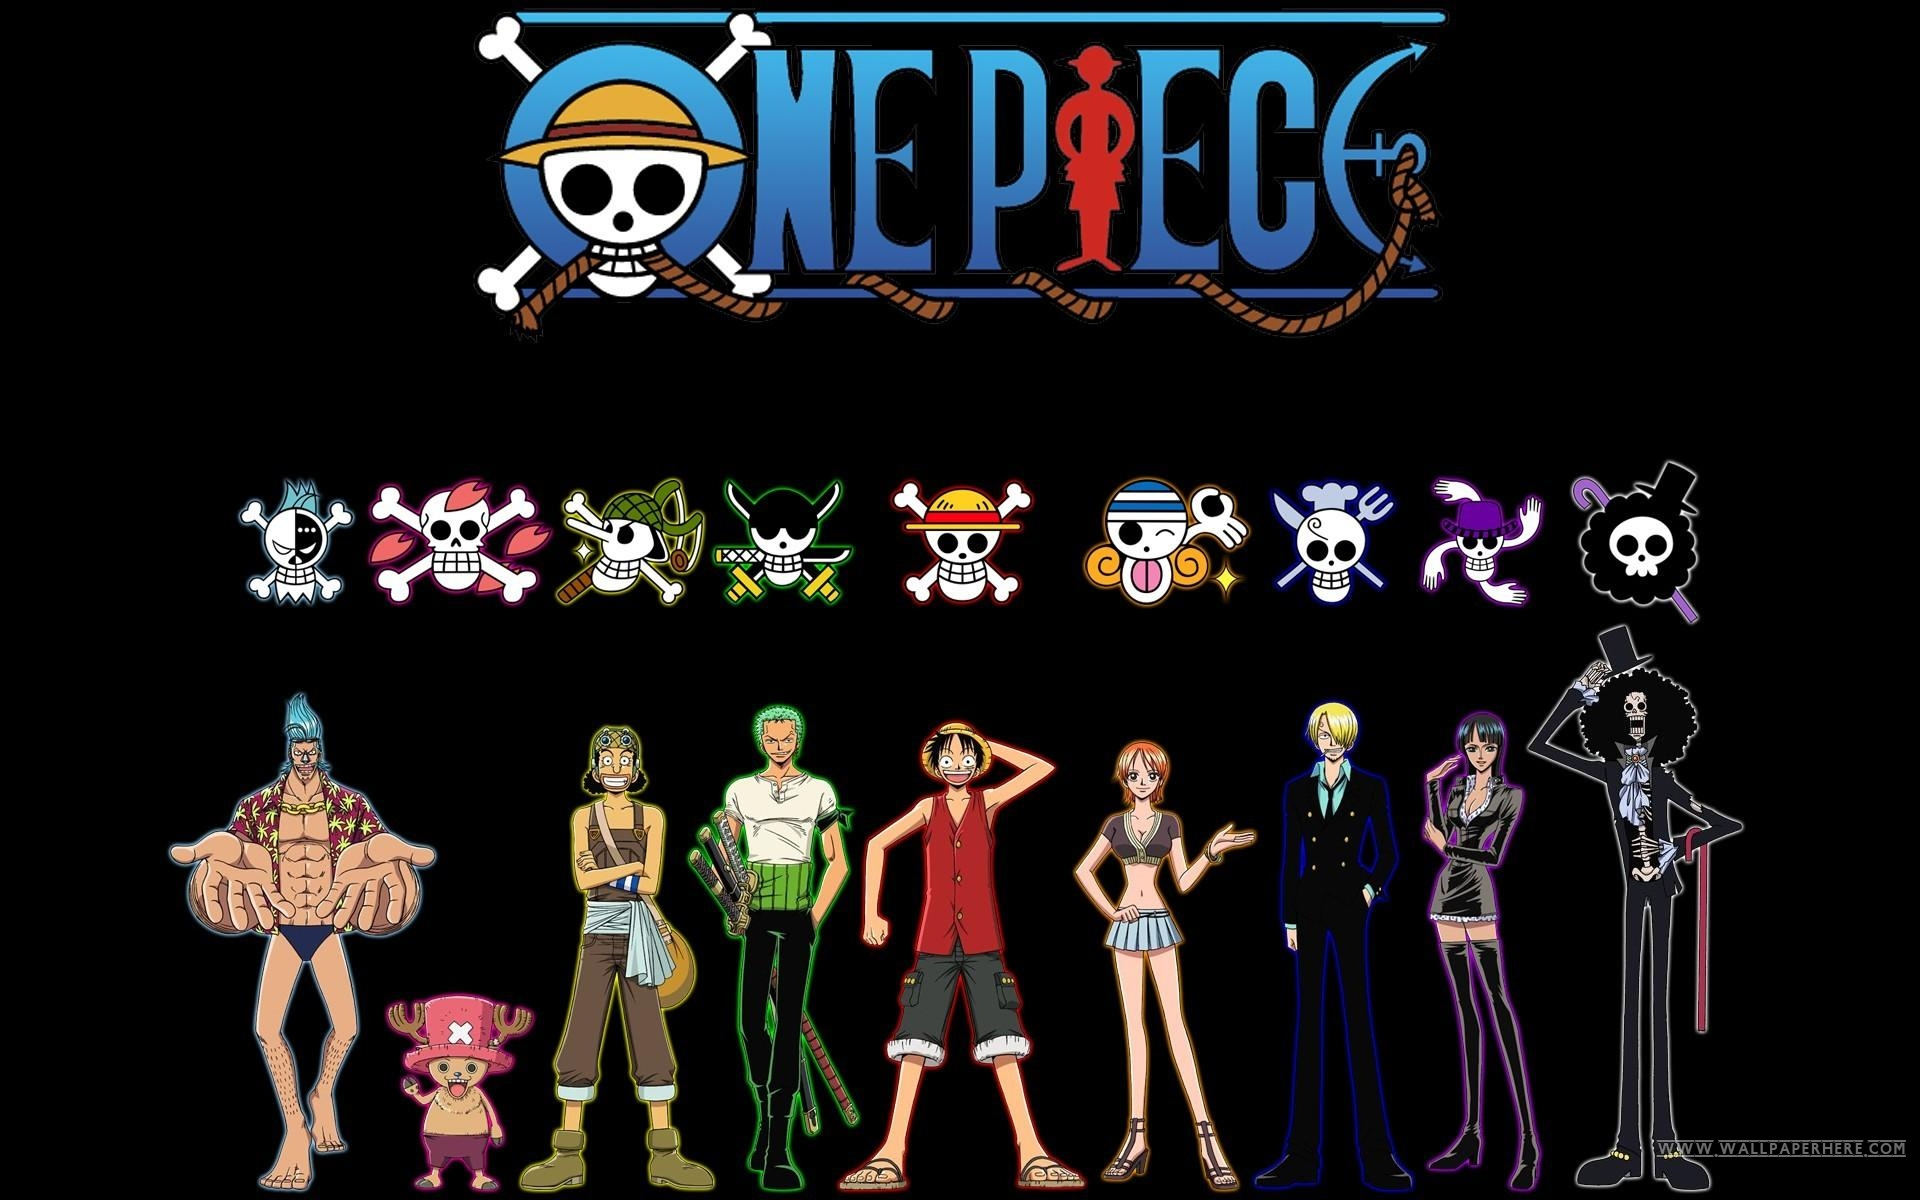 Free Download 10 Gorgeous One Piece Anime Hd Wallpapers Design Hey Design Hey 1920x1200 For Your Desktop Mobile Tablet Explore 77 One Pieces Wallpaper One Piece Wallpaper 1920x1080 One Check out our lil uzi vert selection for the very best in unique or custom, handmade pieces from our wall décor shops. wallpapersafari